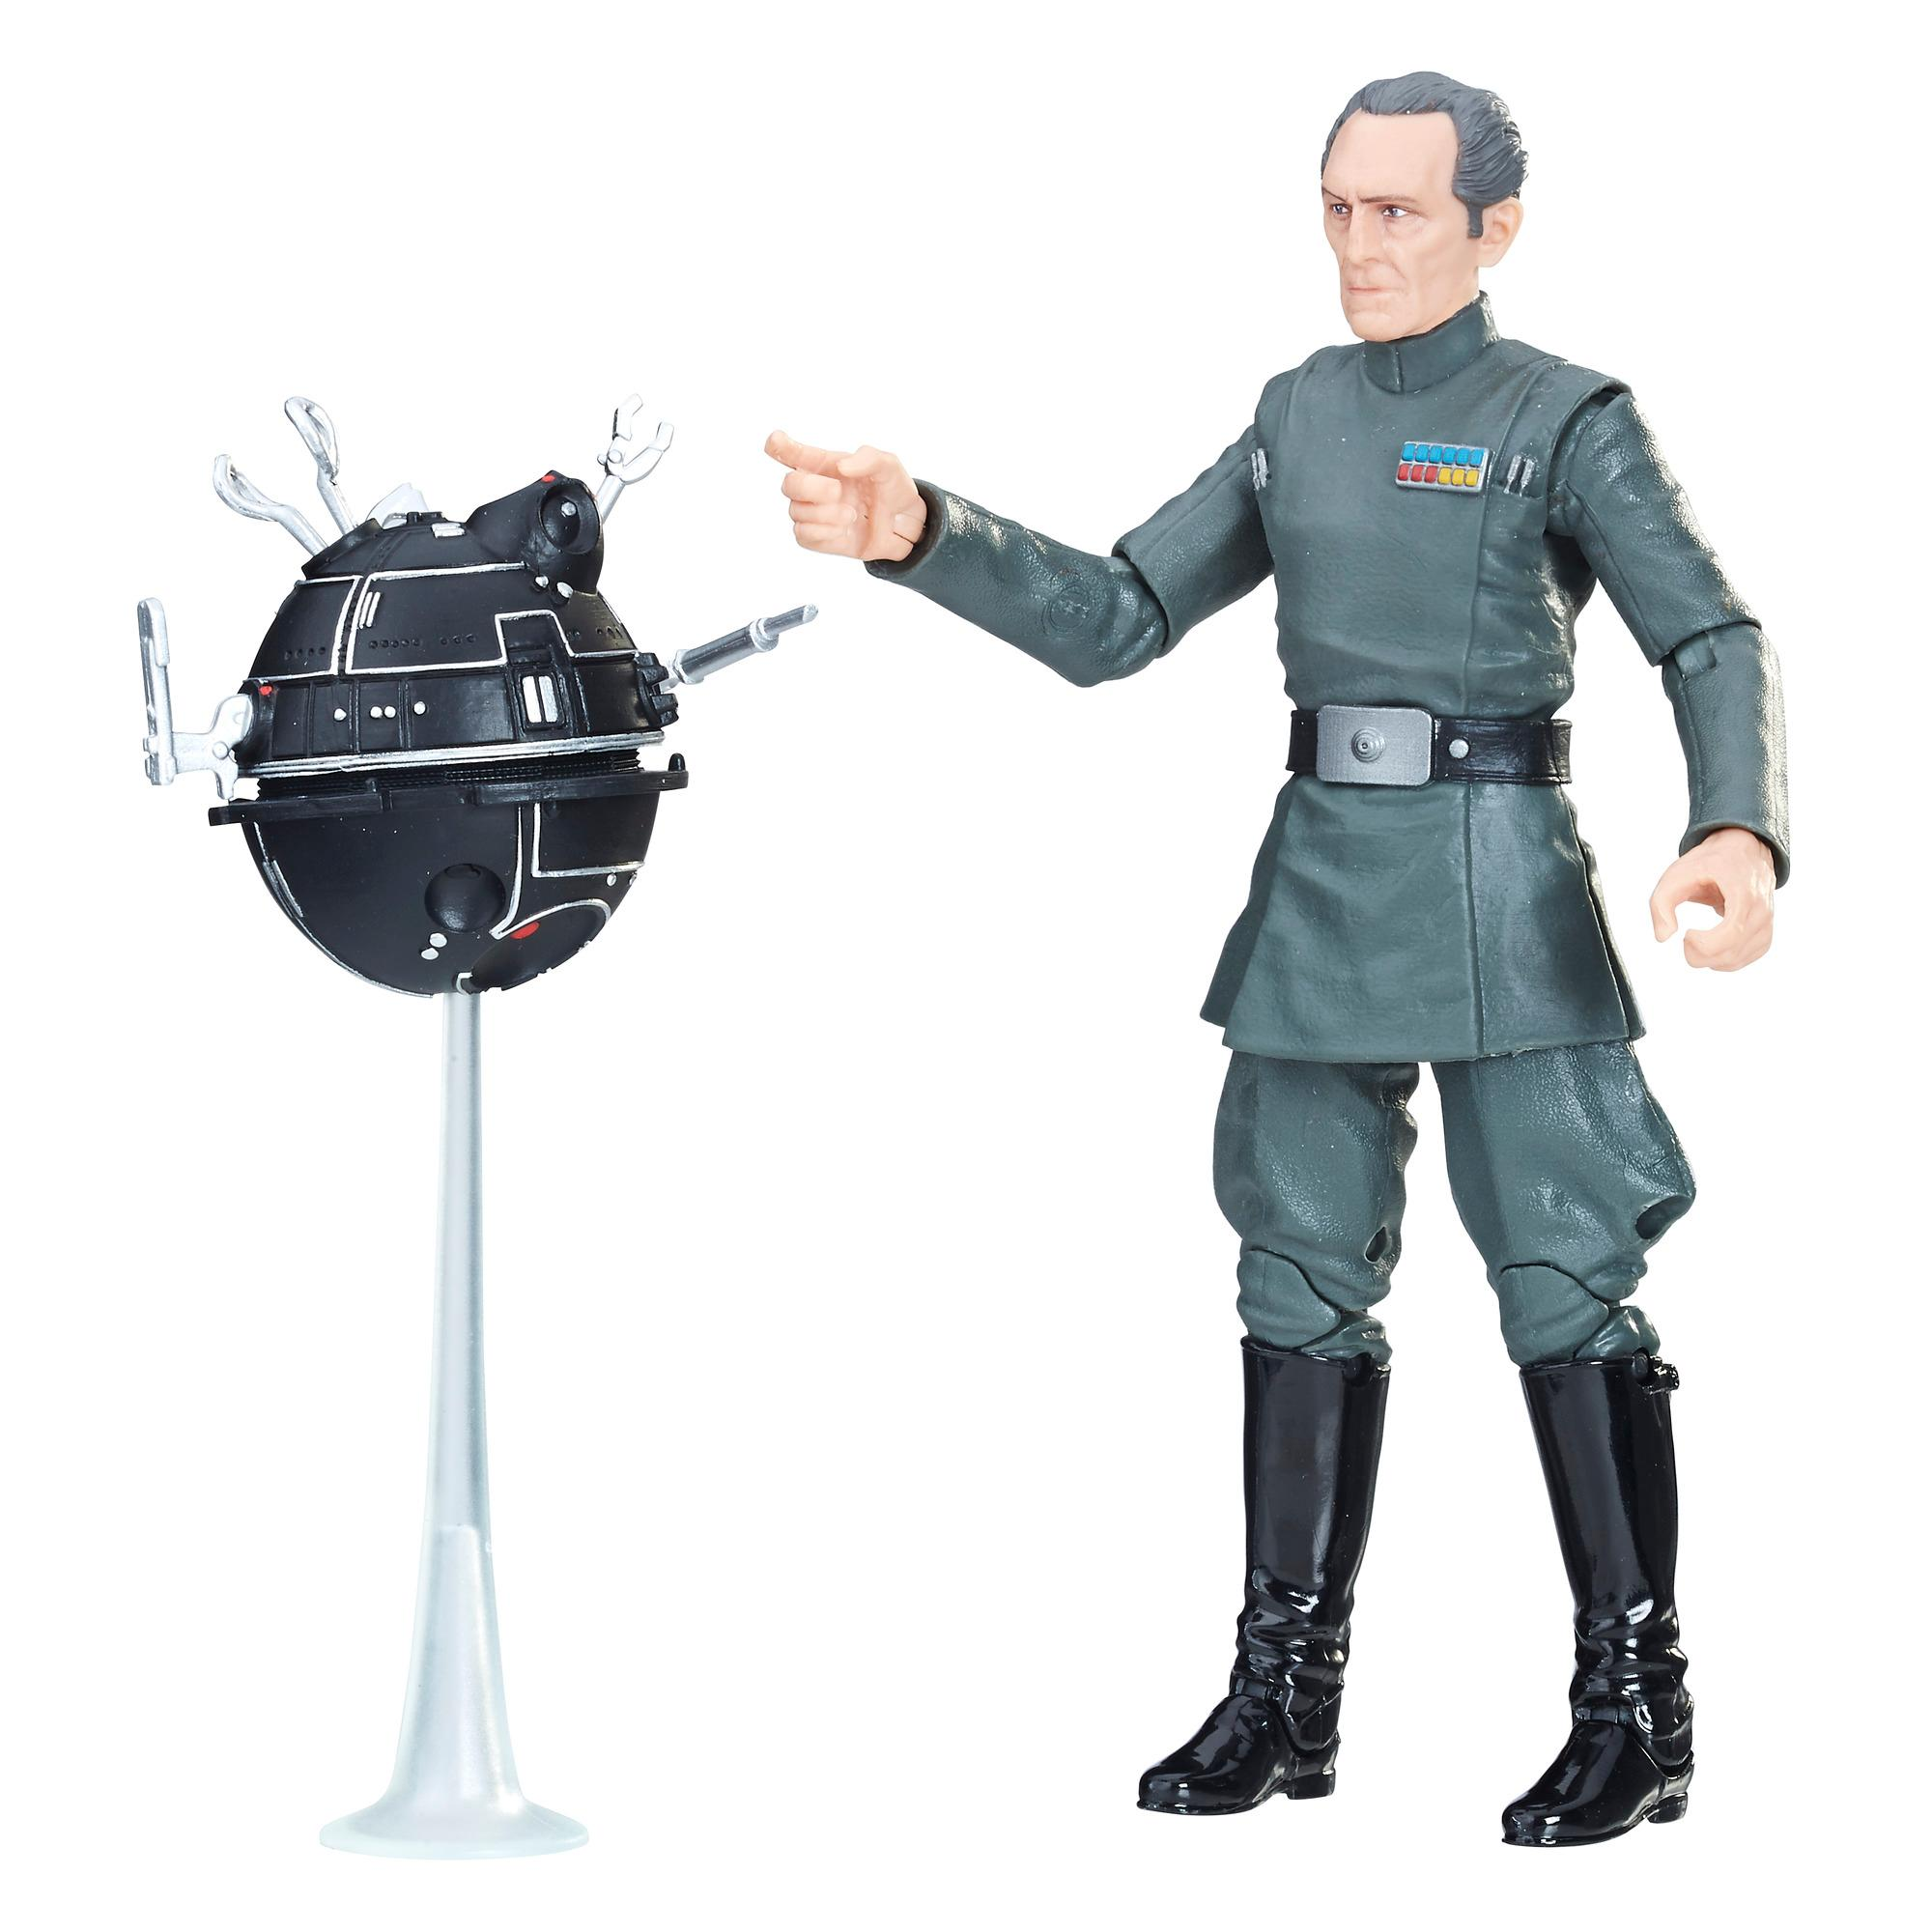 Star Wars The Black Series Grand Moff Tarkin 6-inch Figure